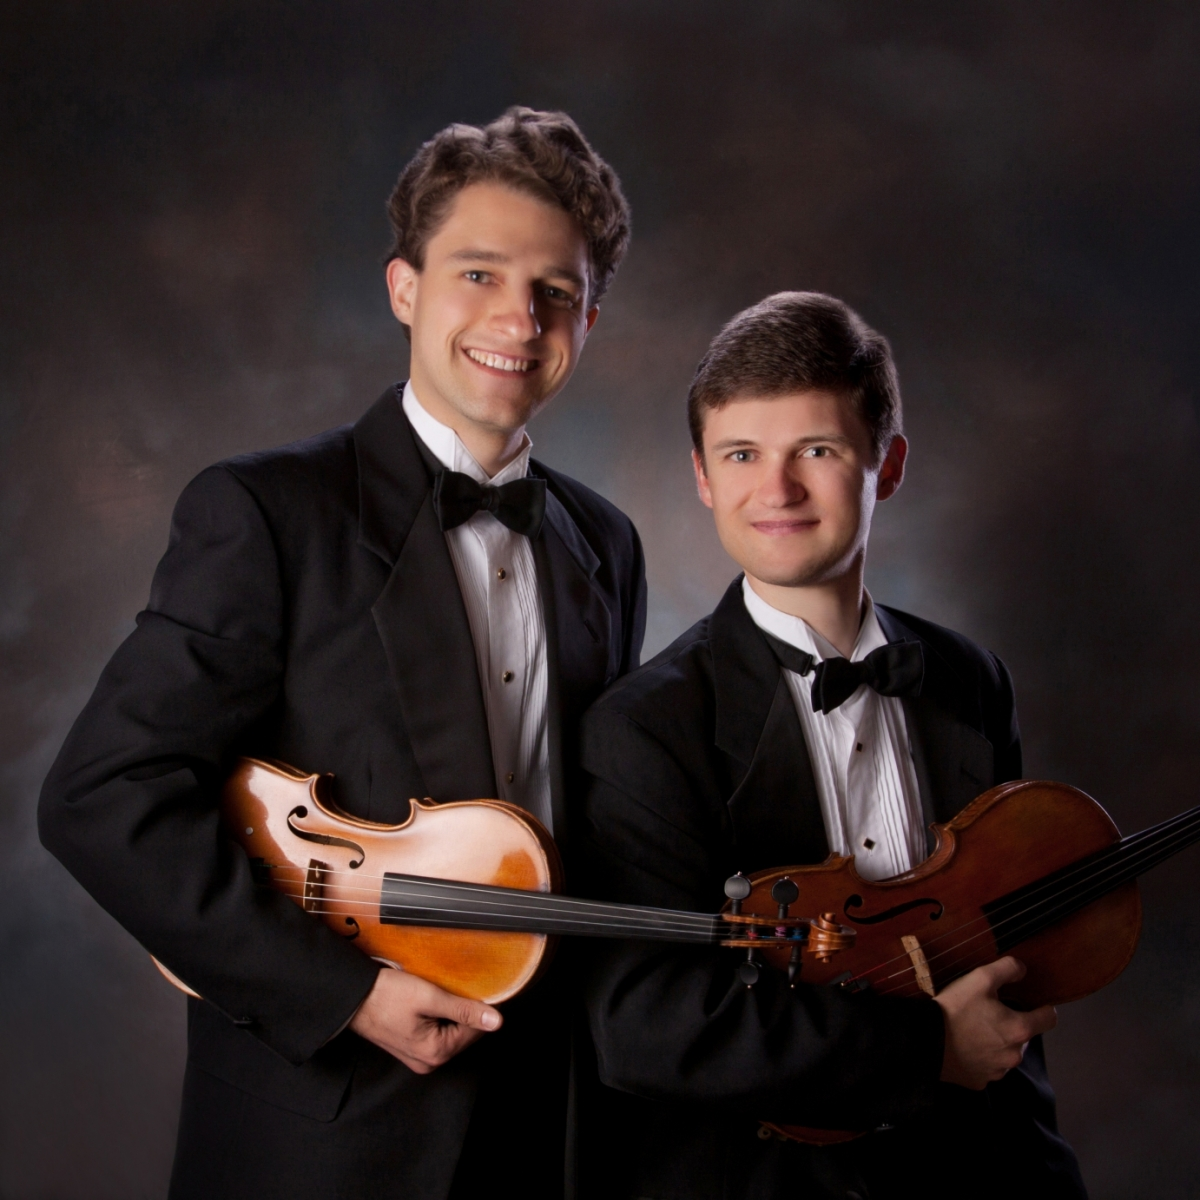 The Classic Strings Duo